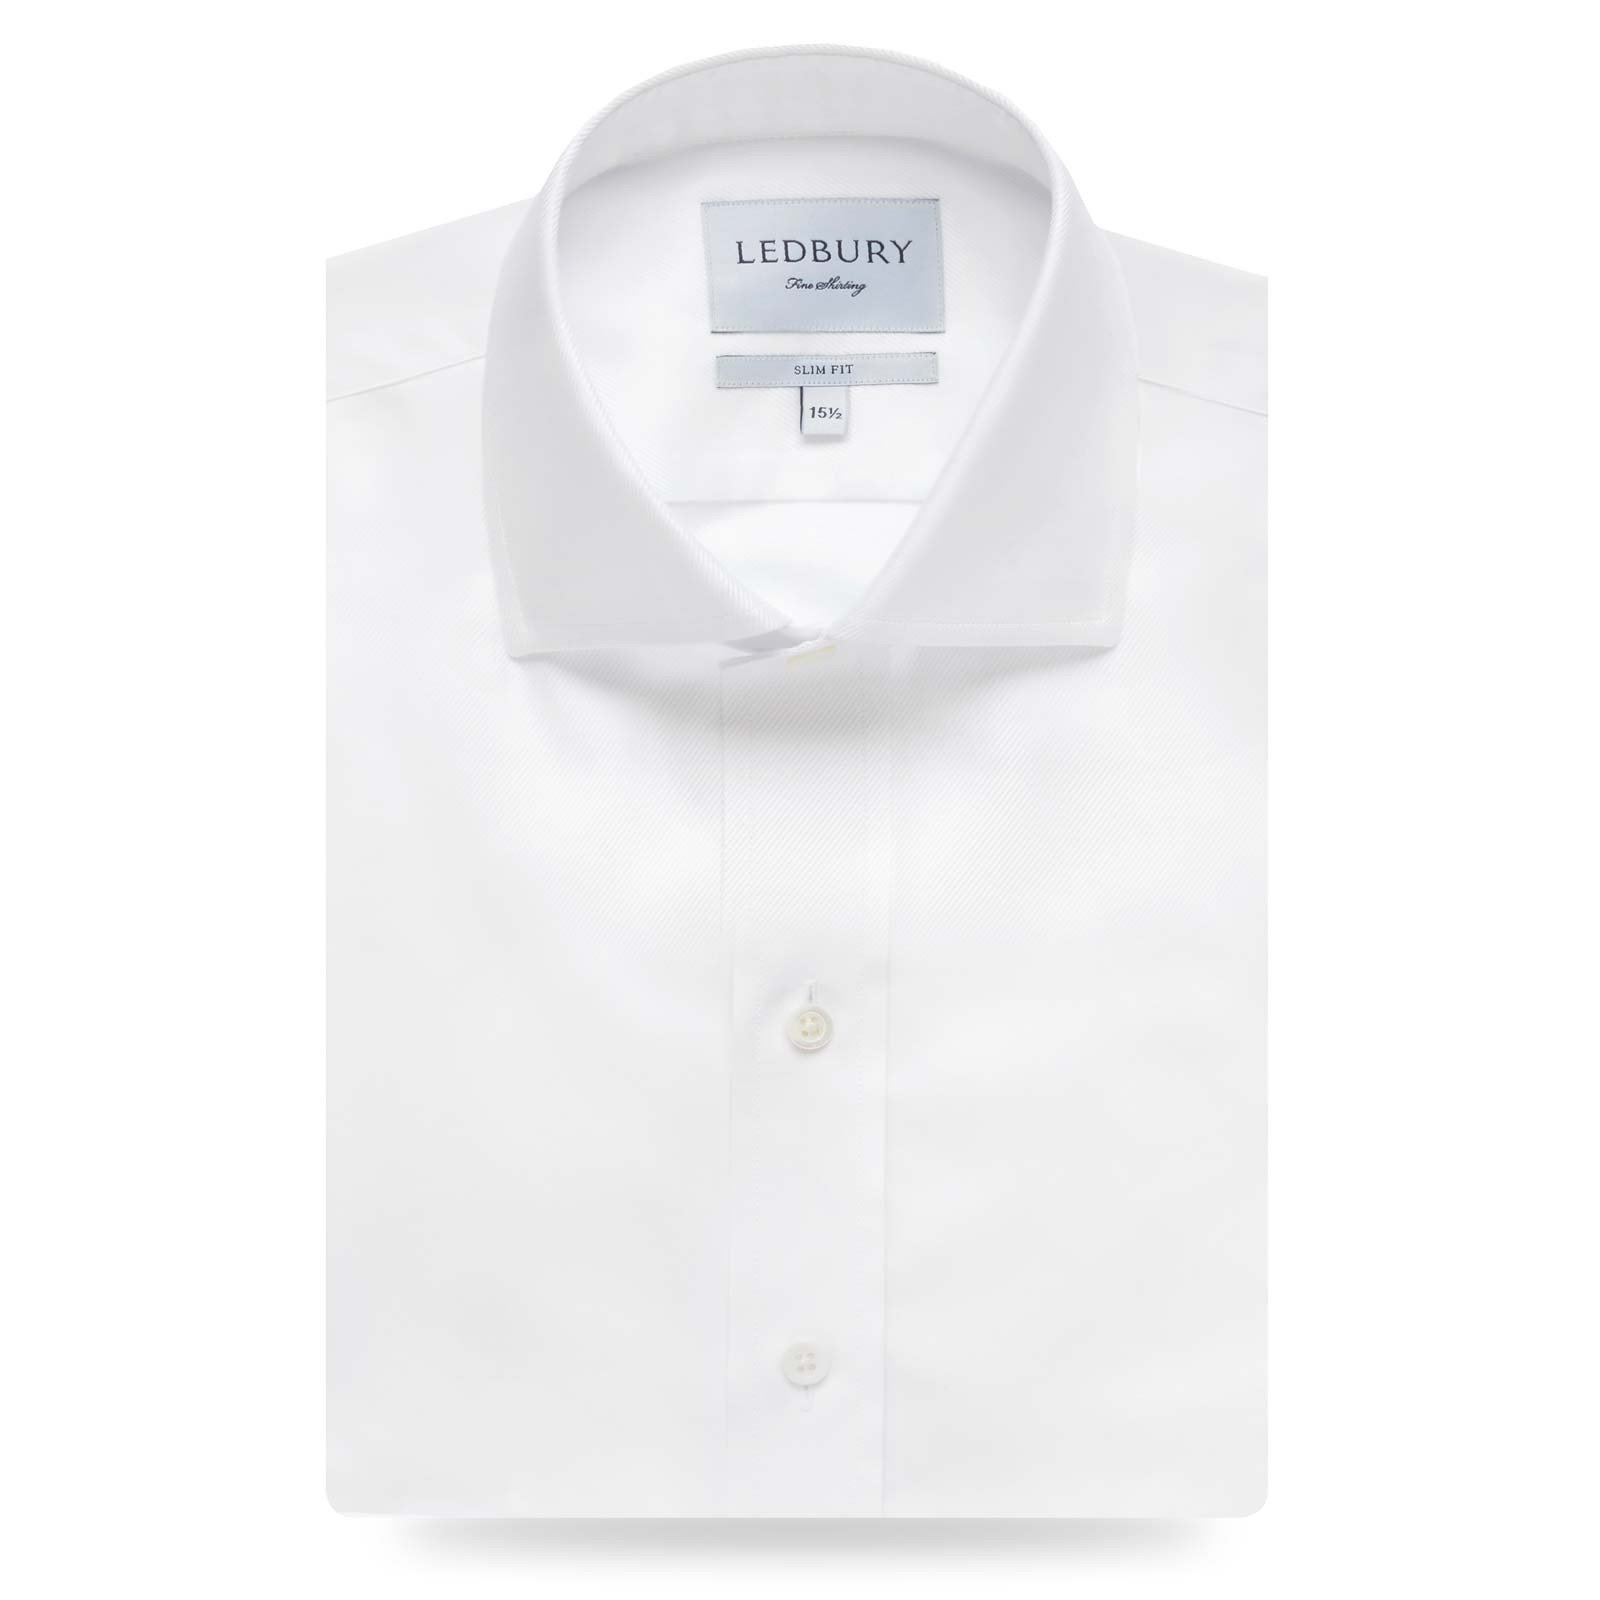 The White Fine Twill Spread Dress Shirt